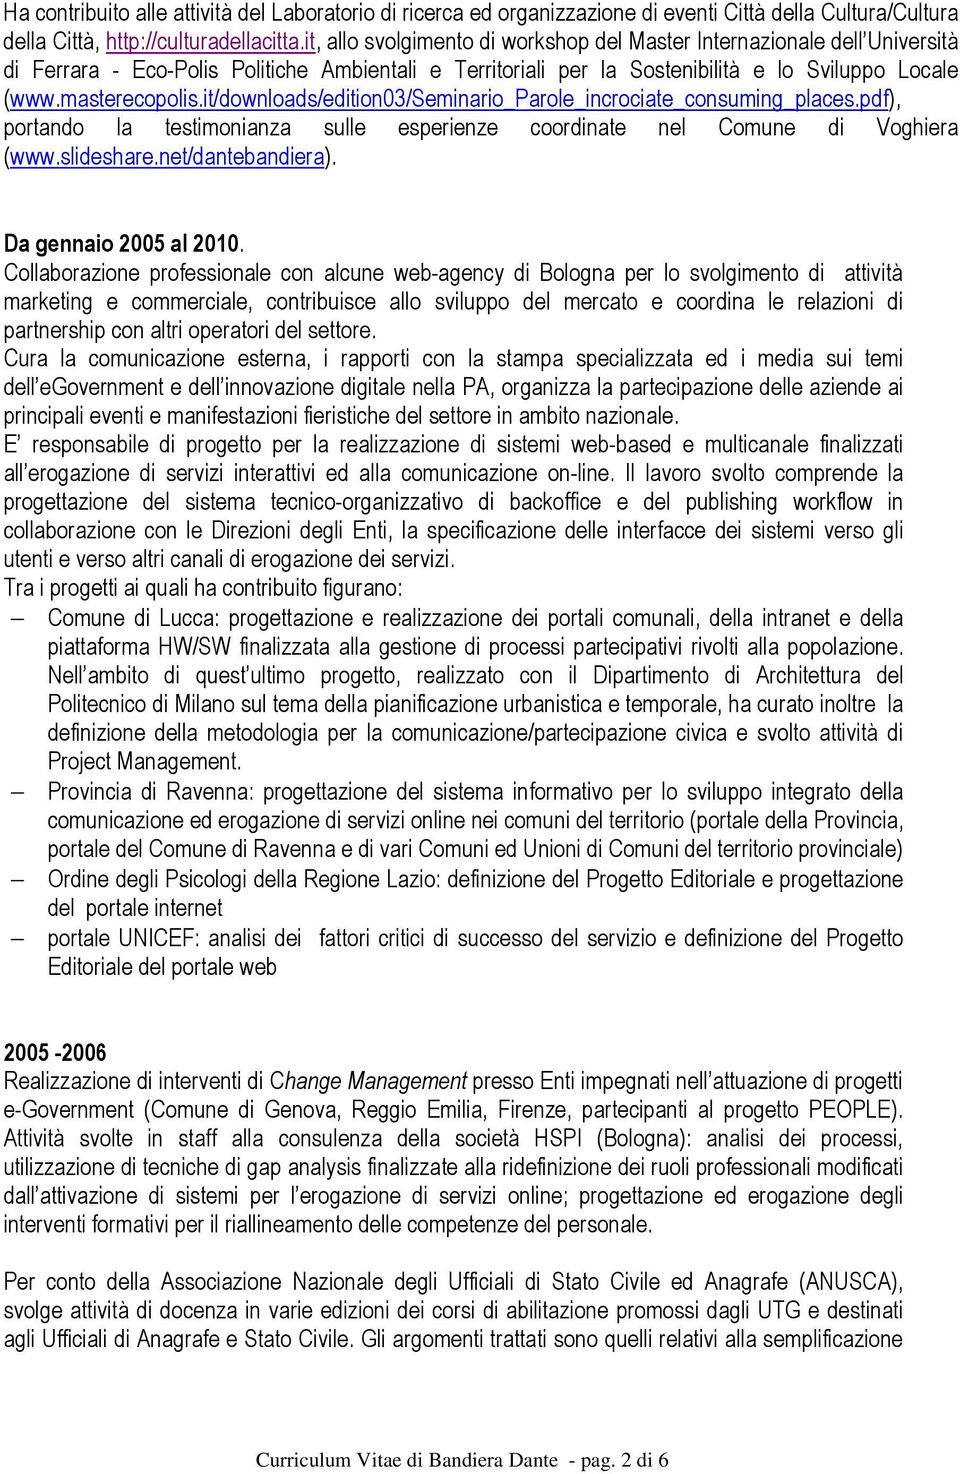 it/downloads/edition03/seminario_parole_incrociate_consuming_places.pdf), portando la testimonianza sulle esperienze coordinate nel Comune di Voghiera (www.slideshare.net/dantebandiera).